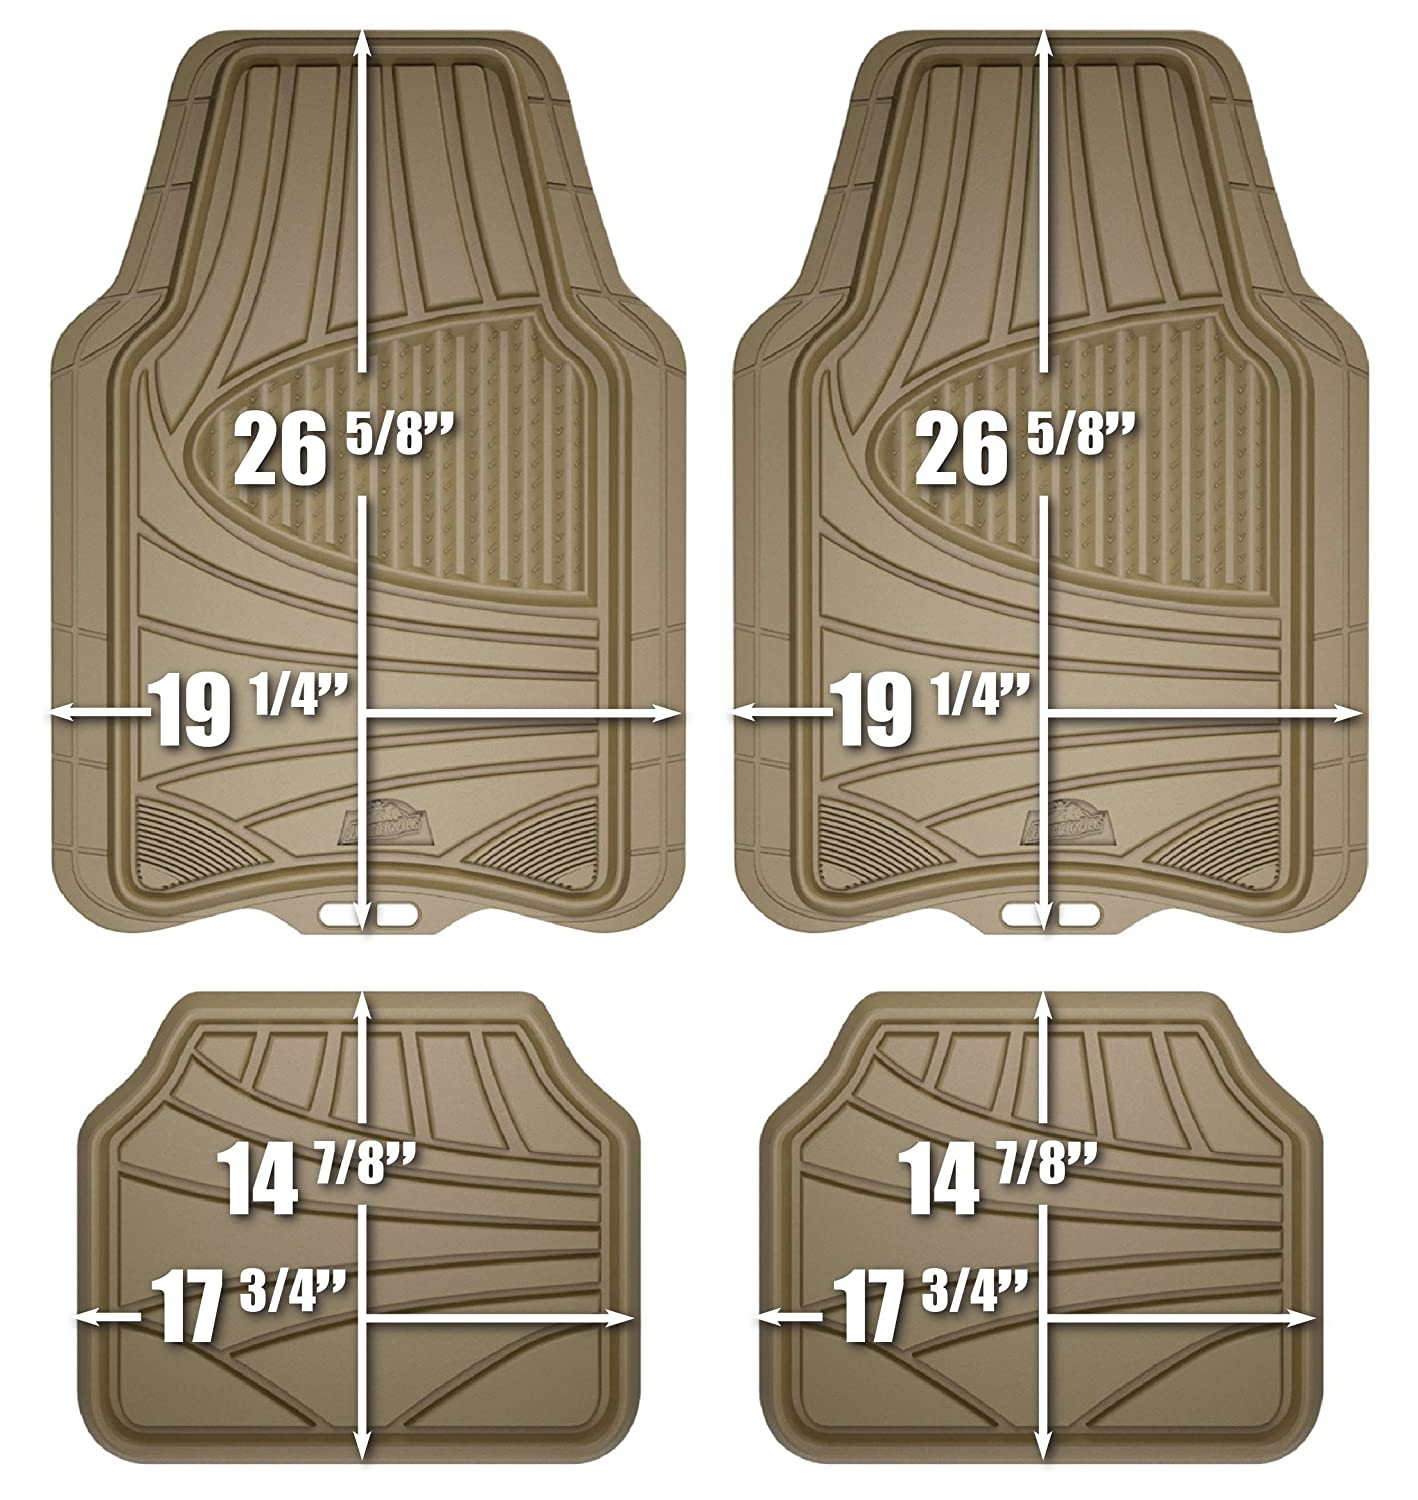 Weathertech floor mats alternative - Armor All 78842 4 Piece Tan All Season Rubber Floor Mat